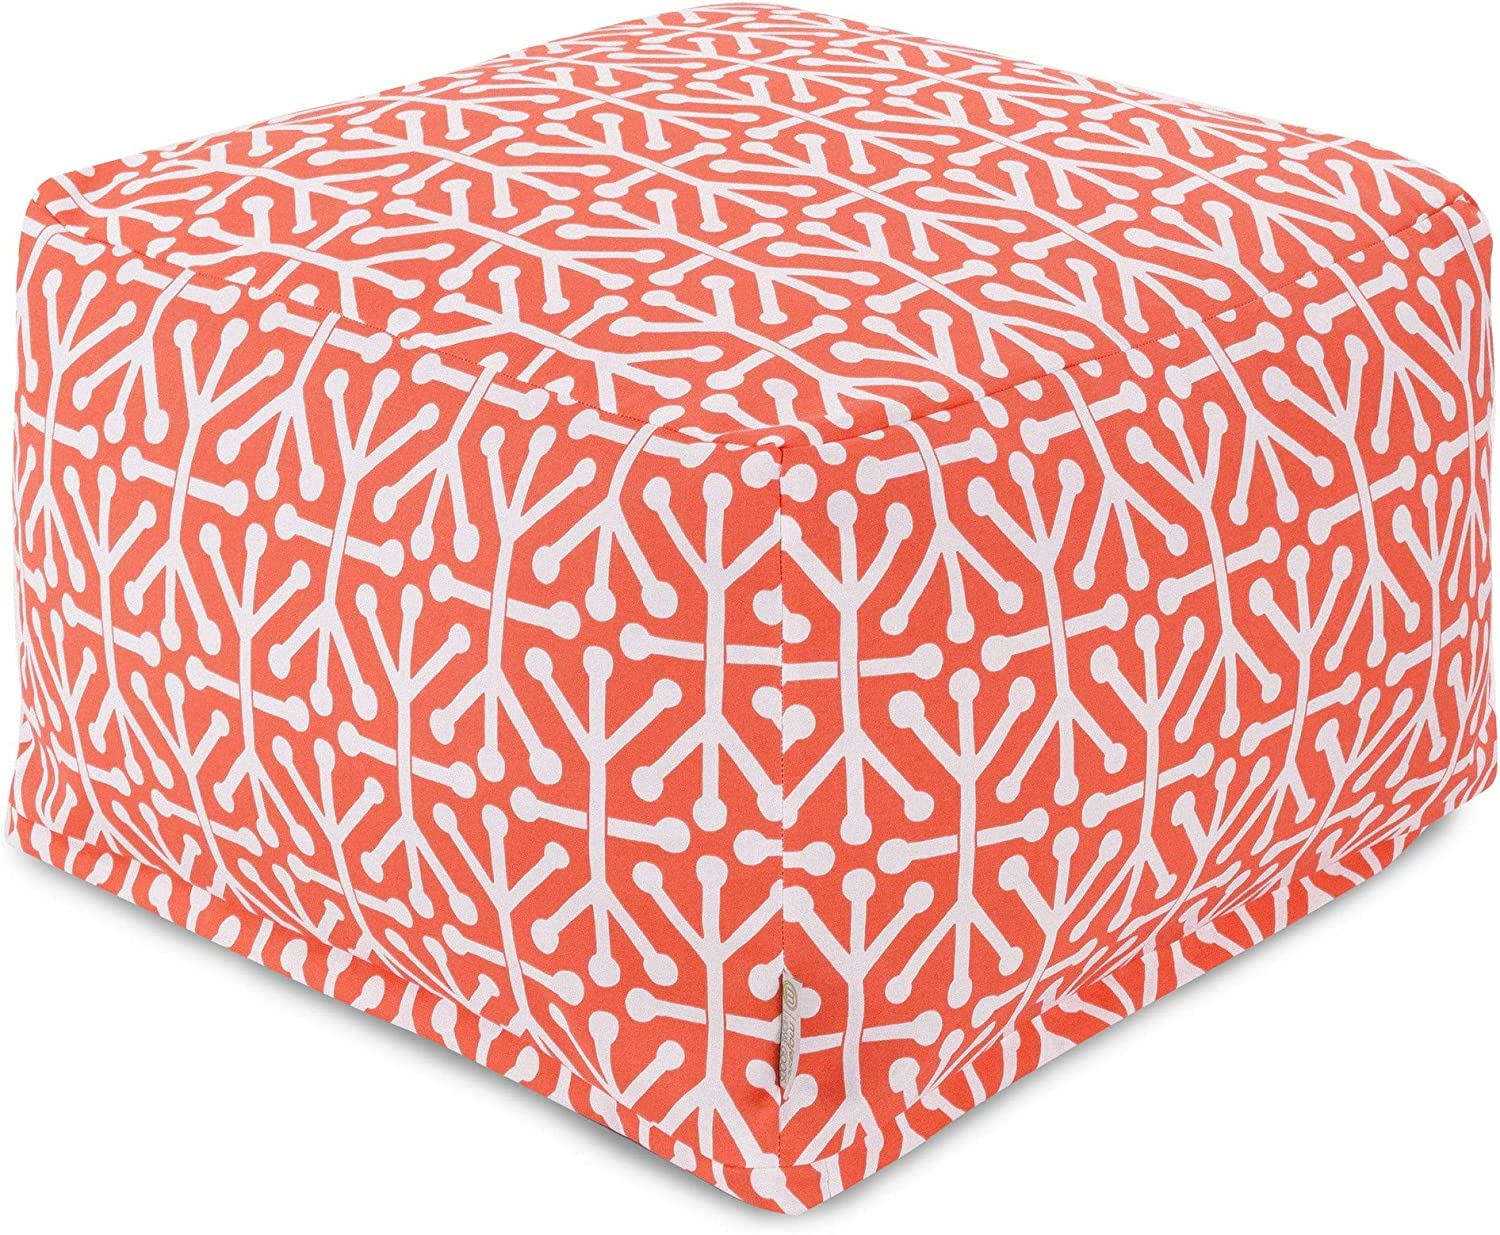 Majestic Home Goods Aruba Ottoman, Large, Orange